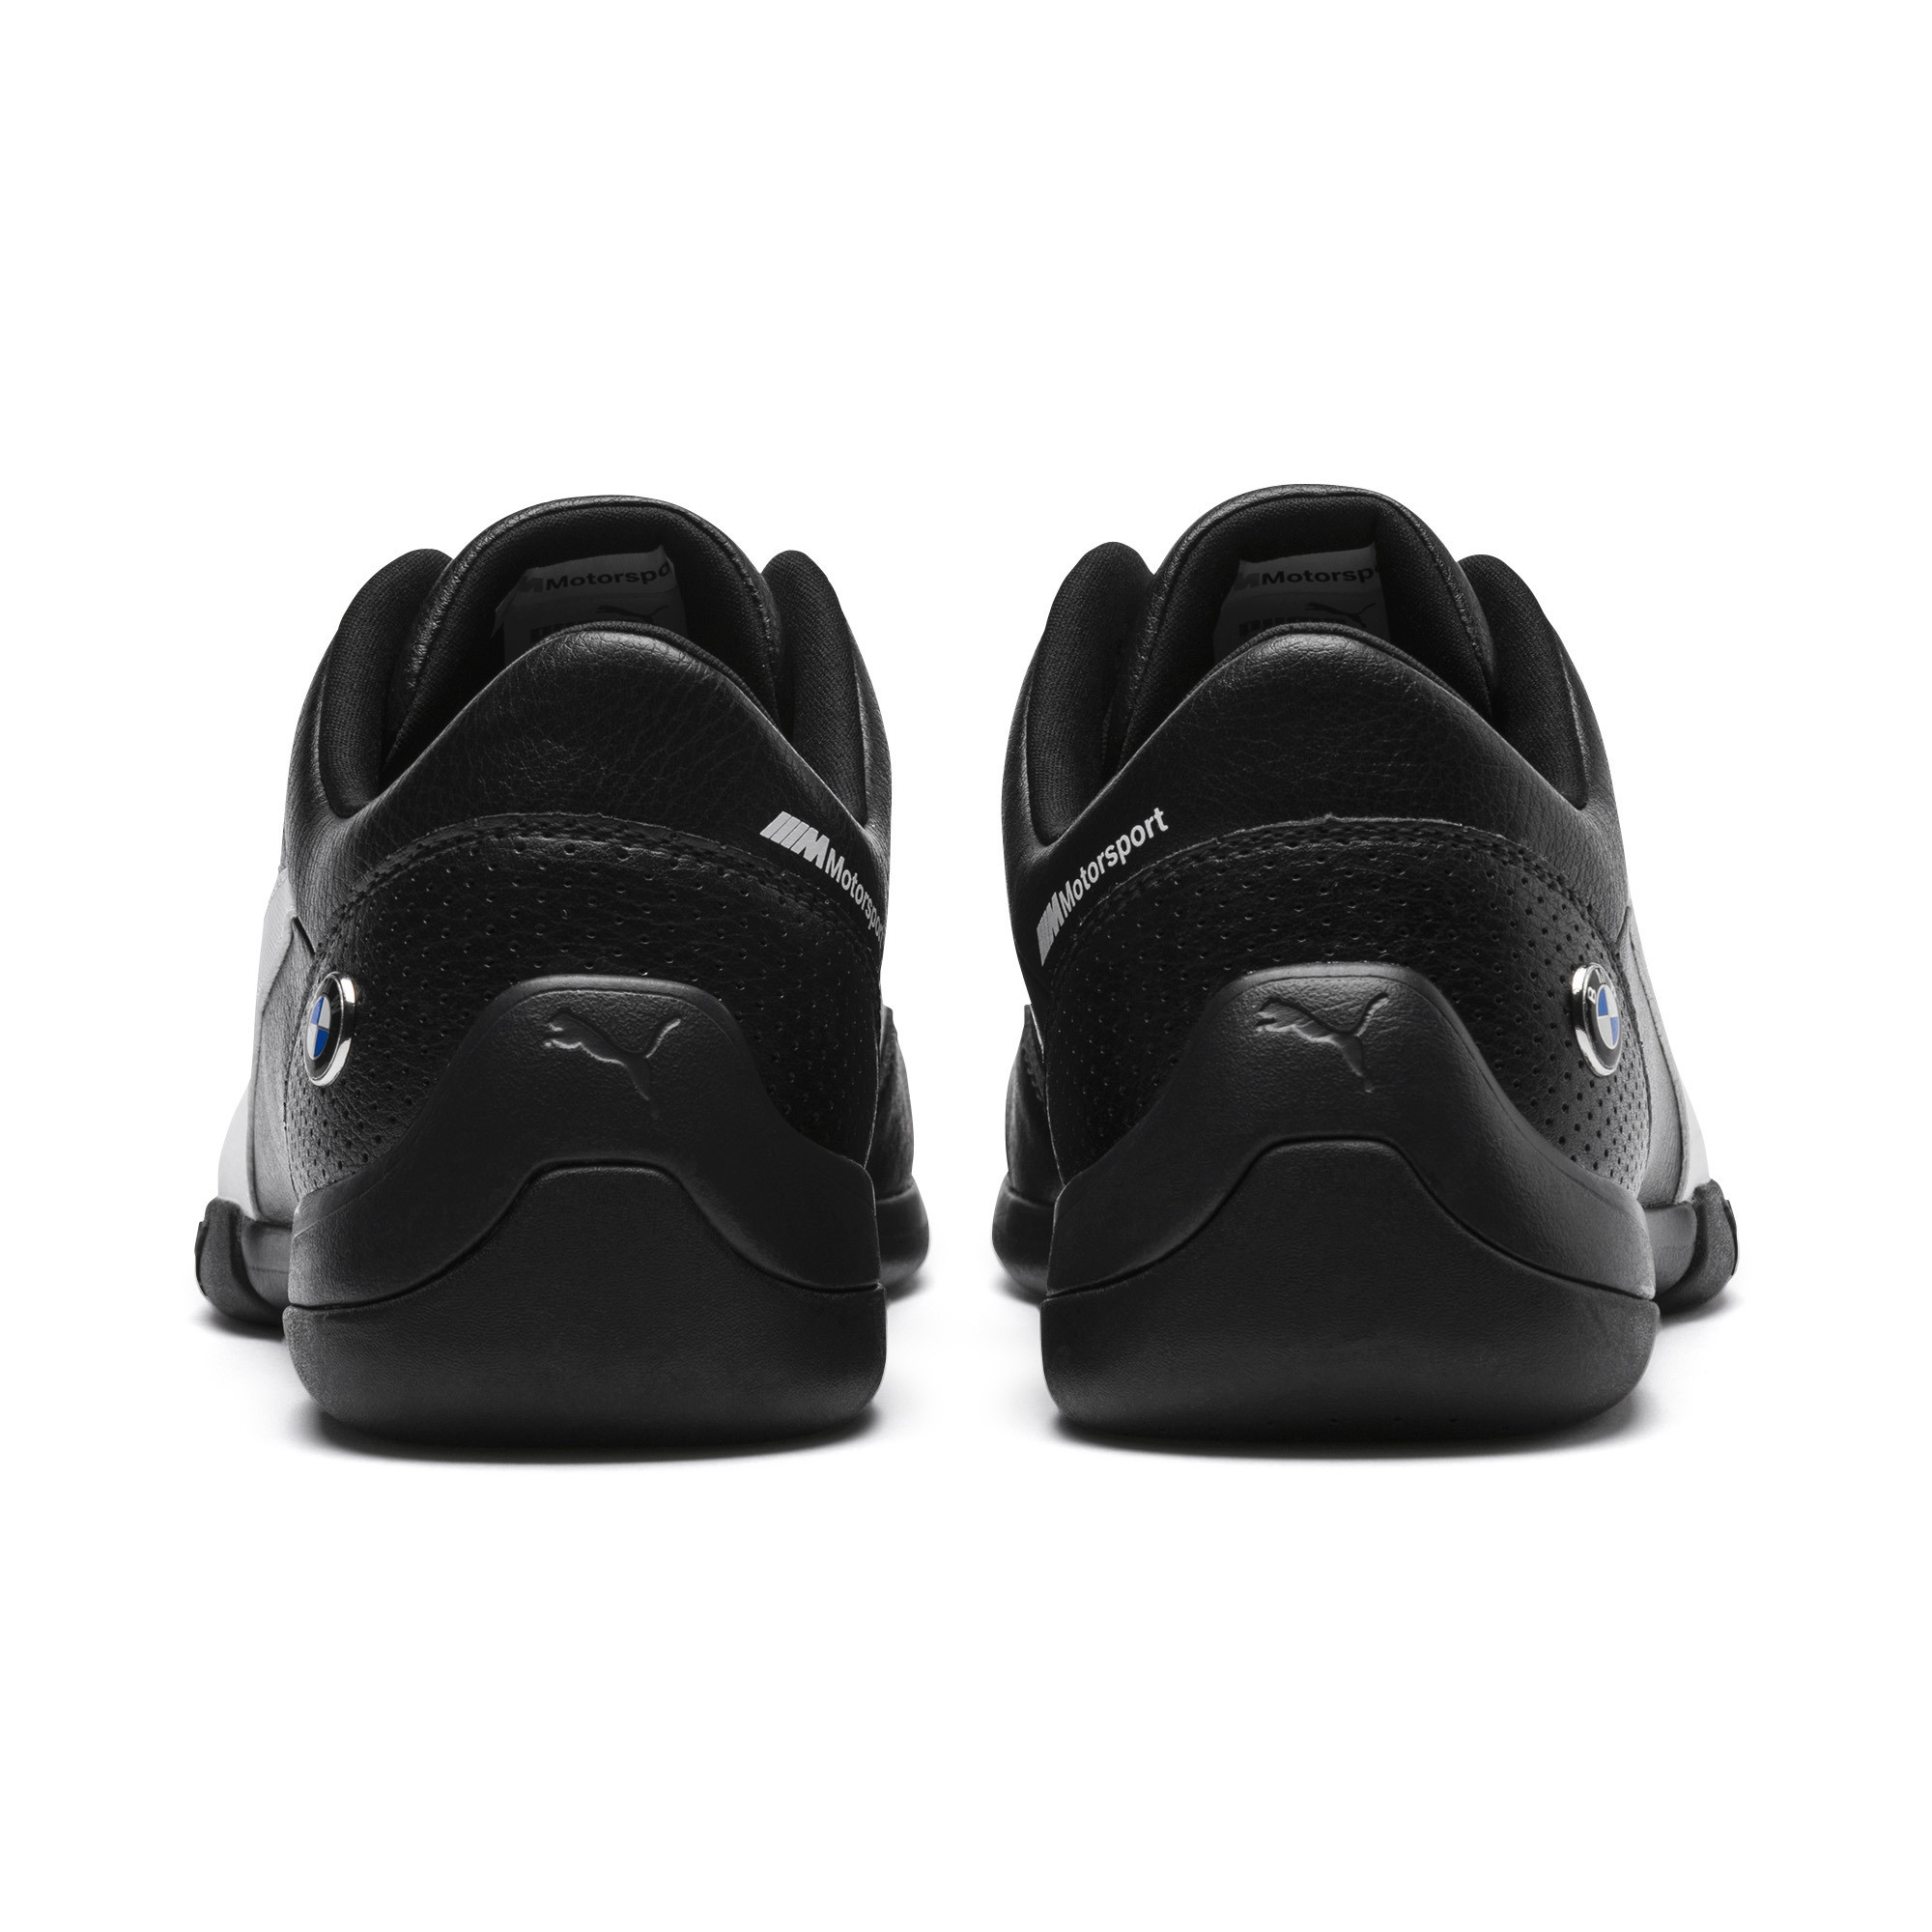 PUMA-BMW-M-Motorsport-Kart-Cat-III-Shoes-Men-Shoe-Auto thumbnail 7